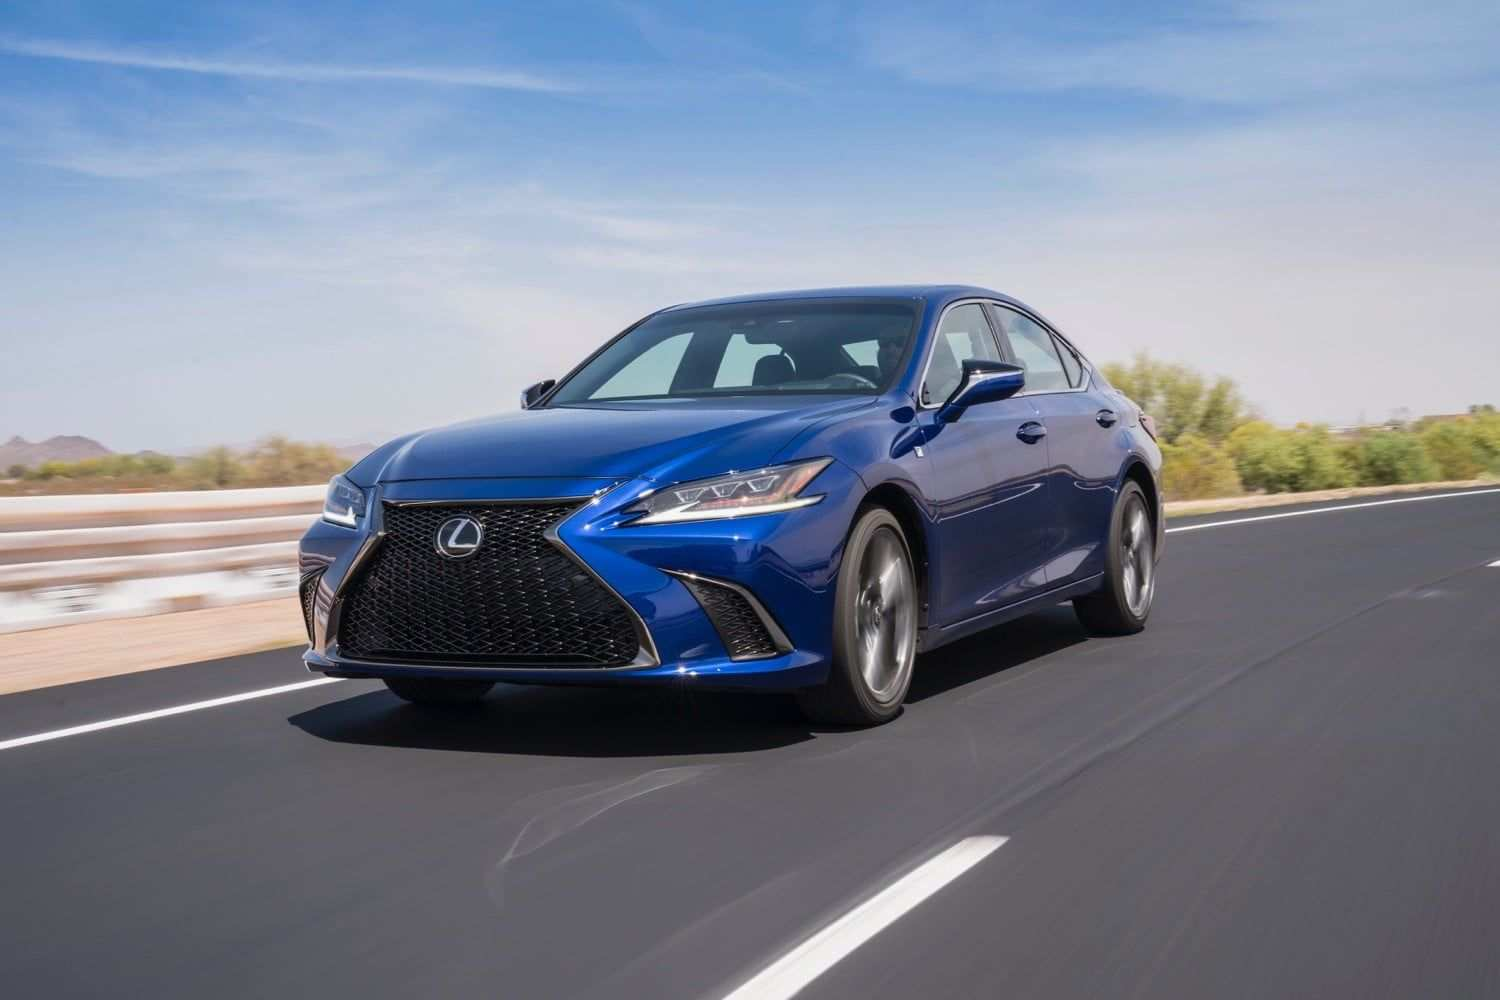 80 The Best Are The 2019 Lexus Out Yet History